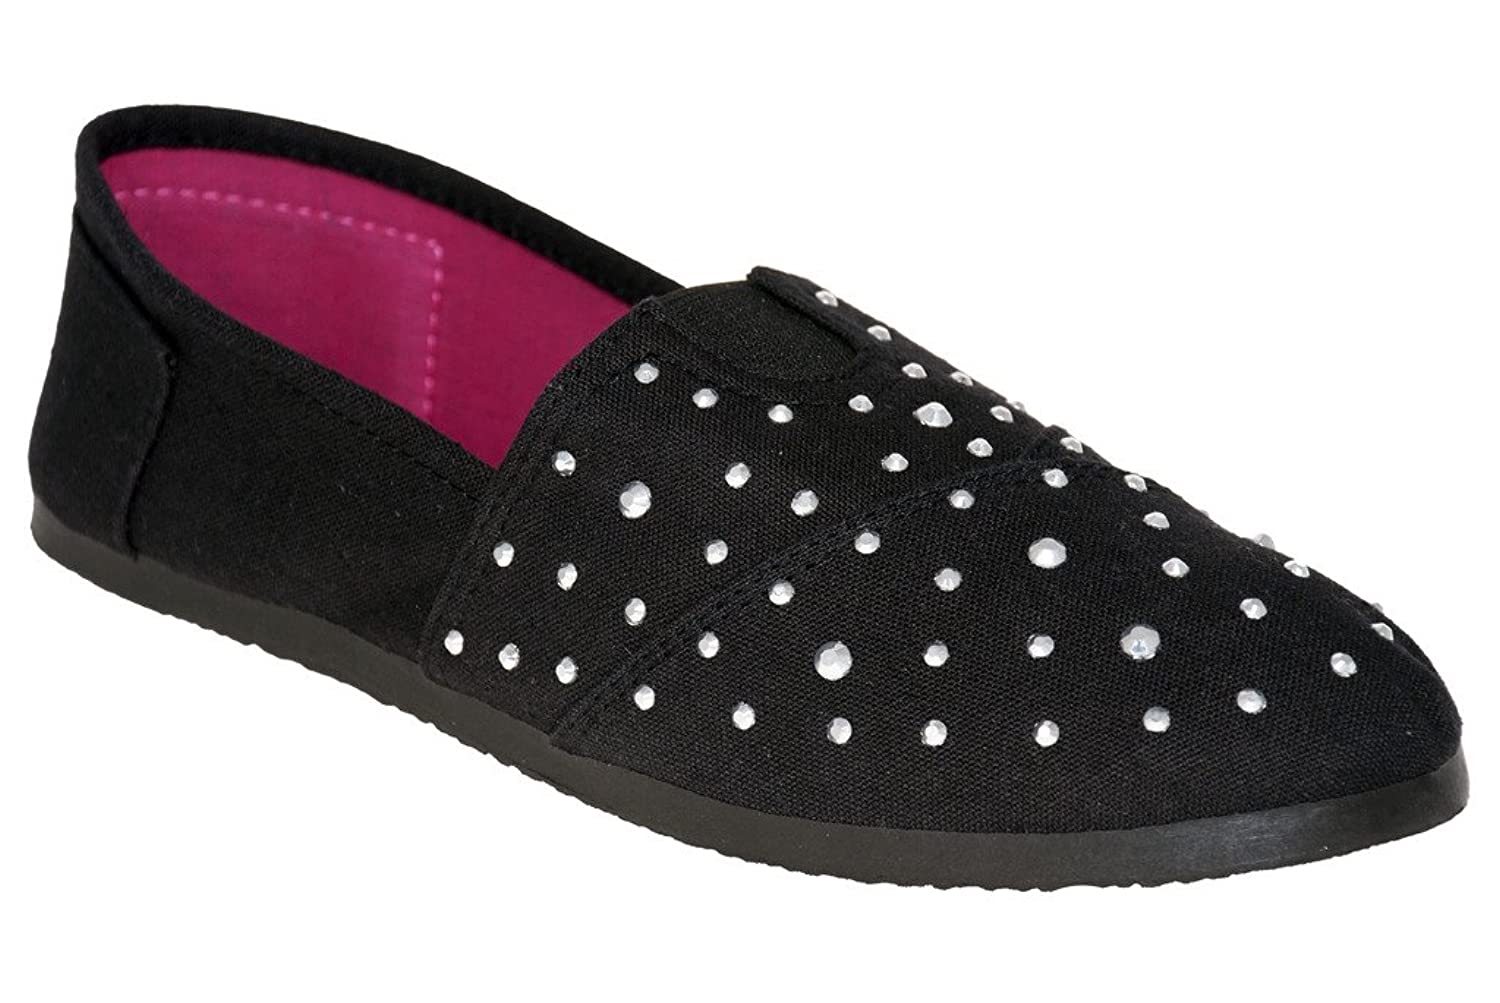 Sweet Women's Canvas with Studs, BLACK-FUCHSISA